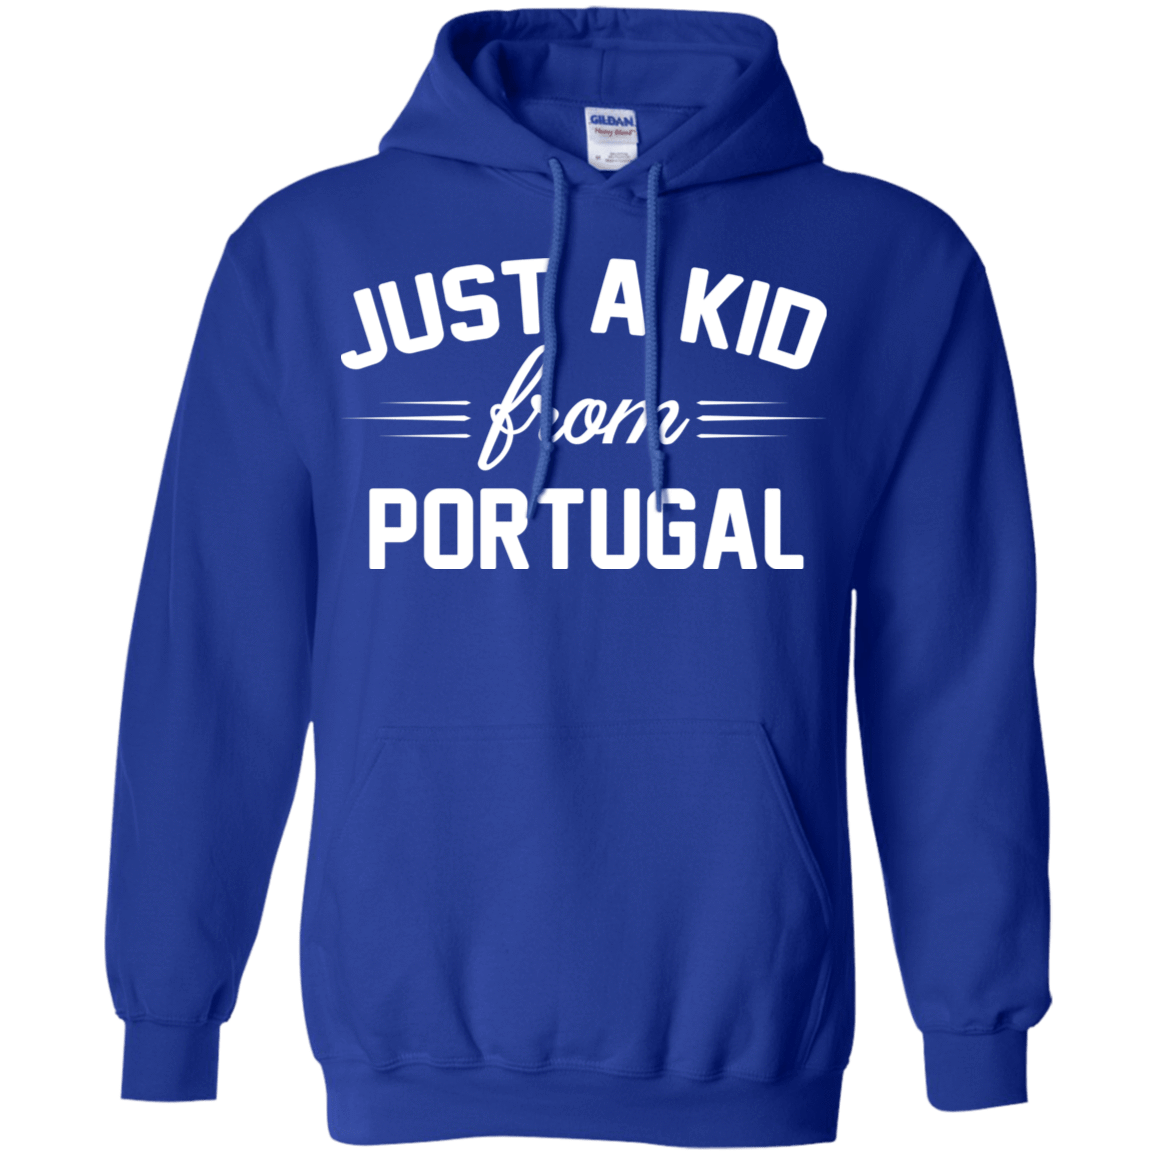 Just a Kid Store | Portugal T-Shirts, Hoodie, Tank 541-4765-72090885-23175 - Tee Ript